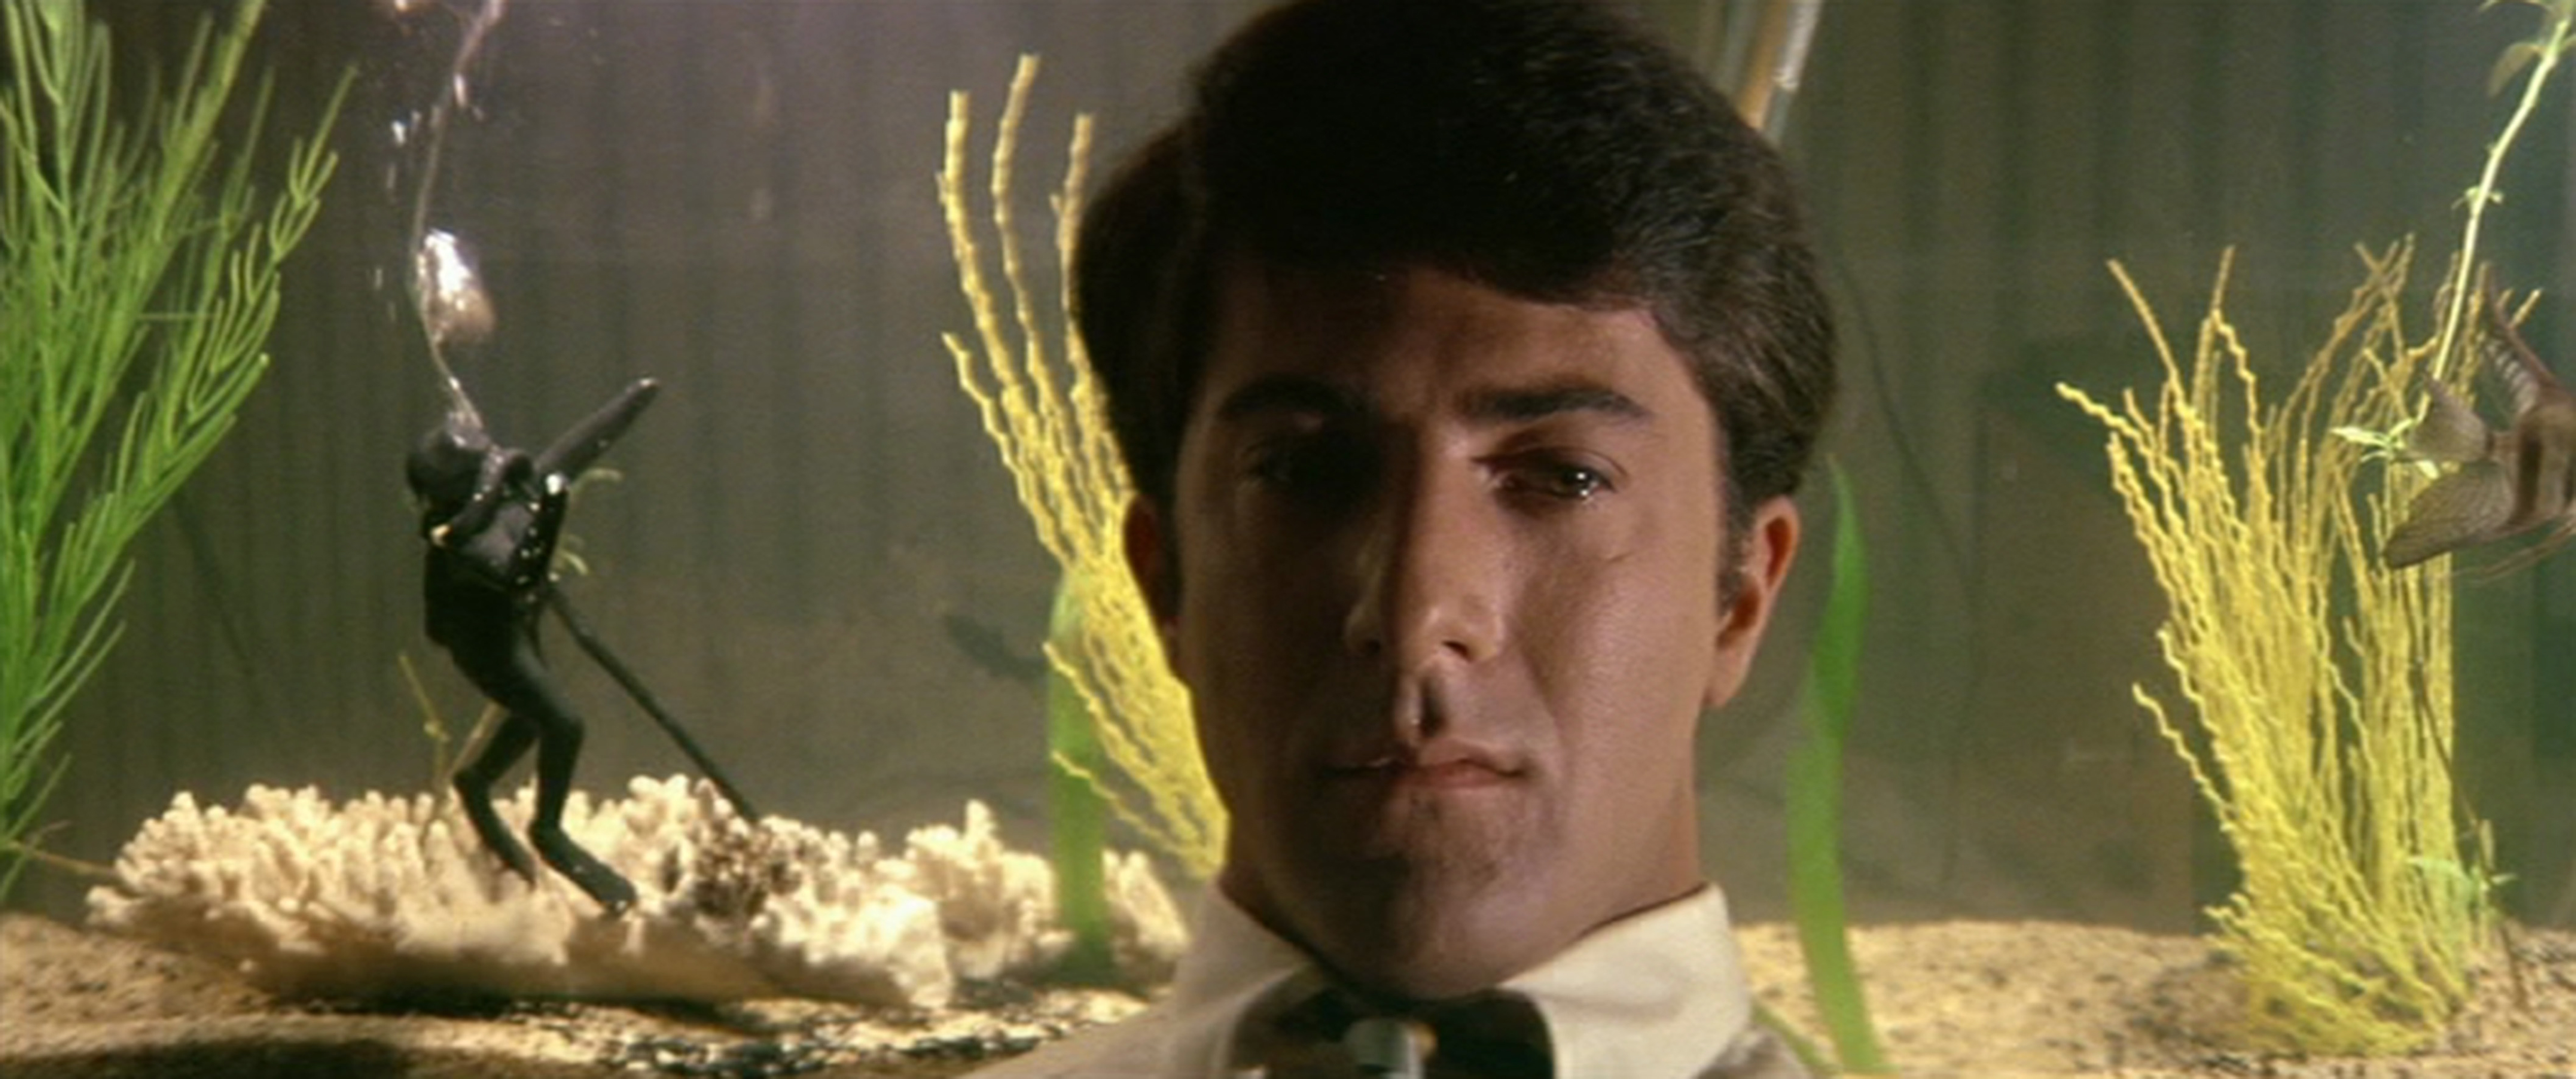 The Graduate (Courtesy: Rialto Pictures/Studiocanal)